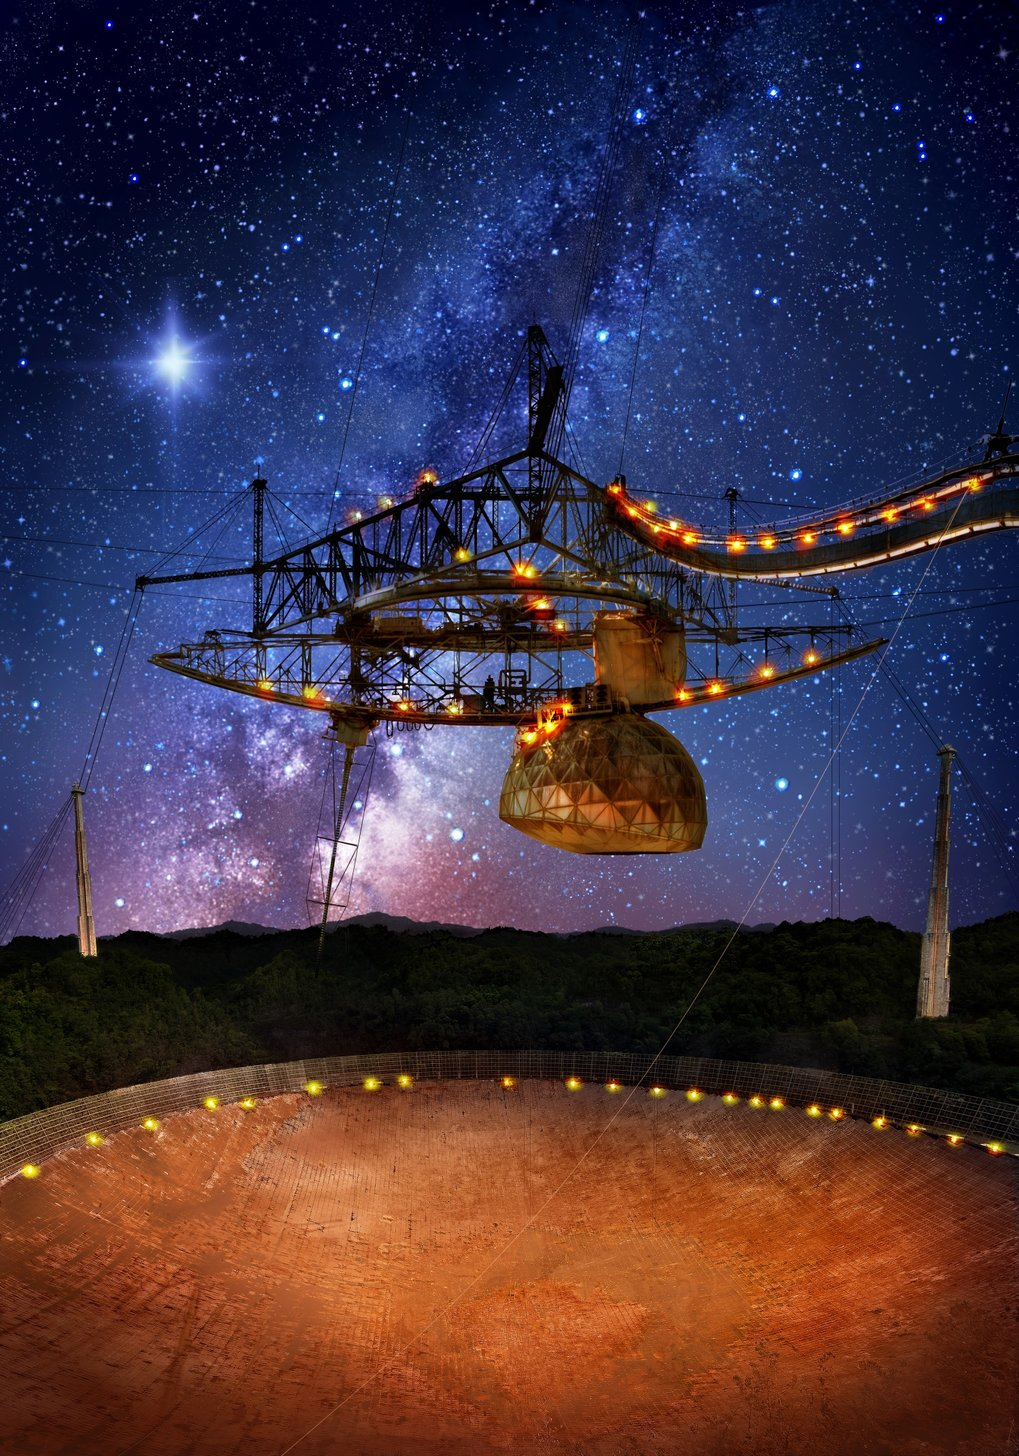 The 305-metre Arecibo telescope, in Puerto Rico, and its suspended support platform of radio receivers is shown amid a starry night.  A flash from the Fast Radio Burst source FRB 121102 is indicated, originating from deep in extragalactic space.